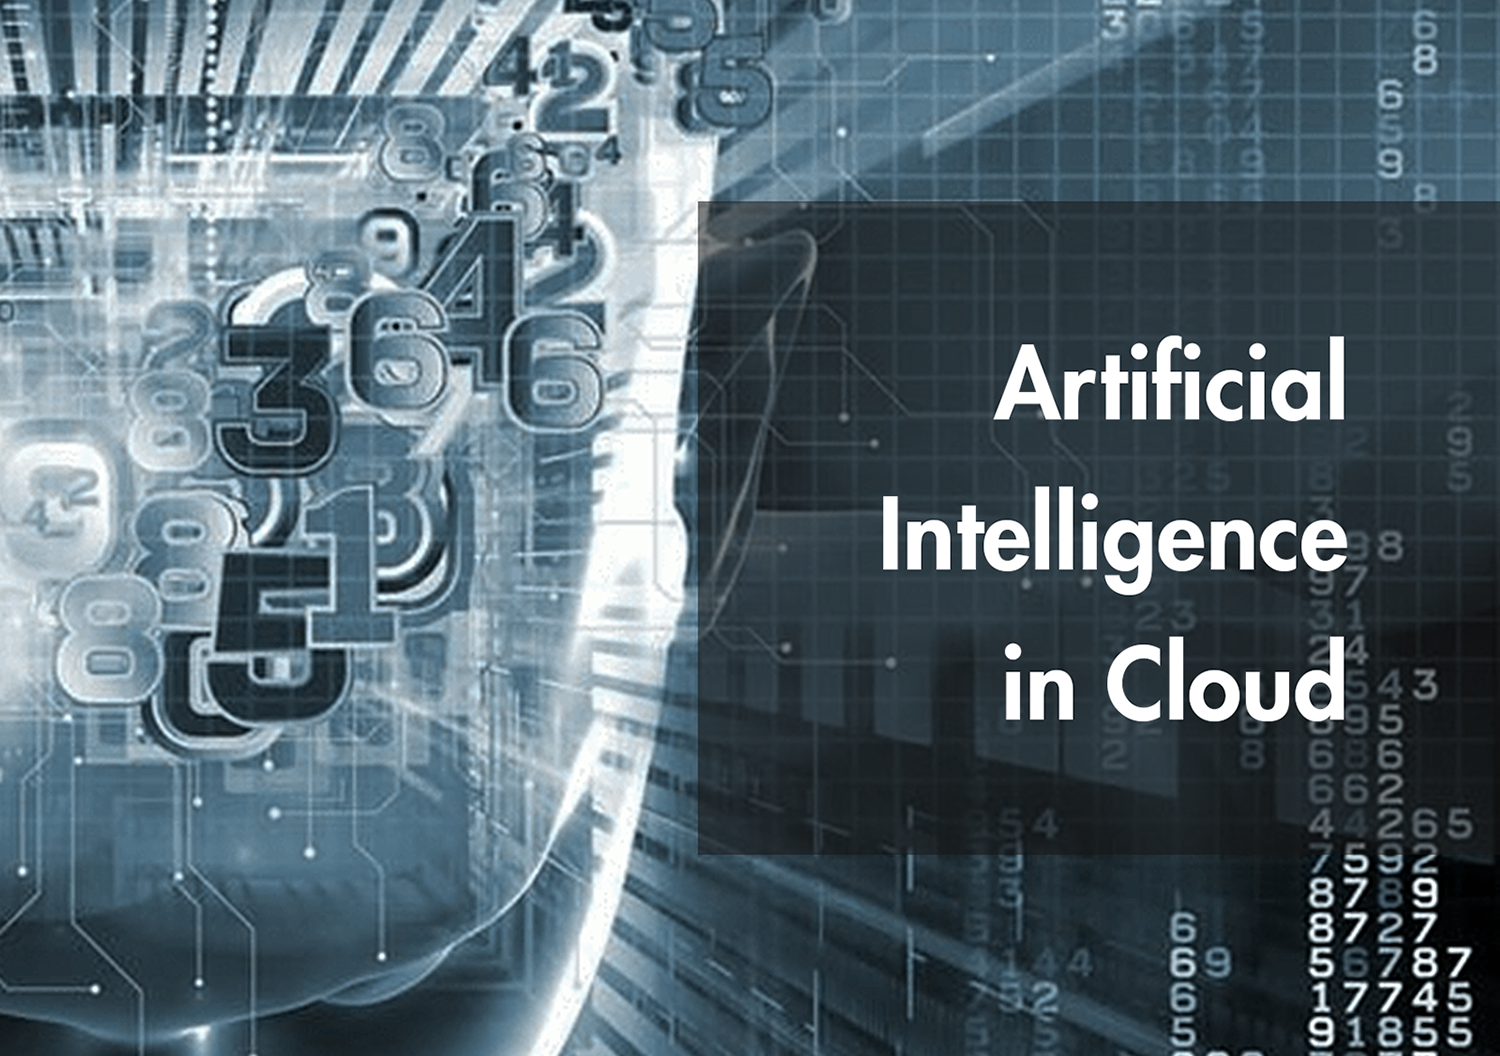 Artificial Intelligence in Cloud